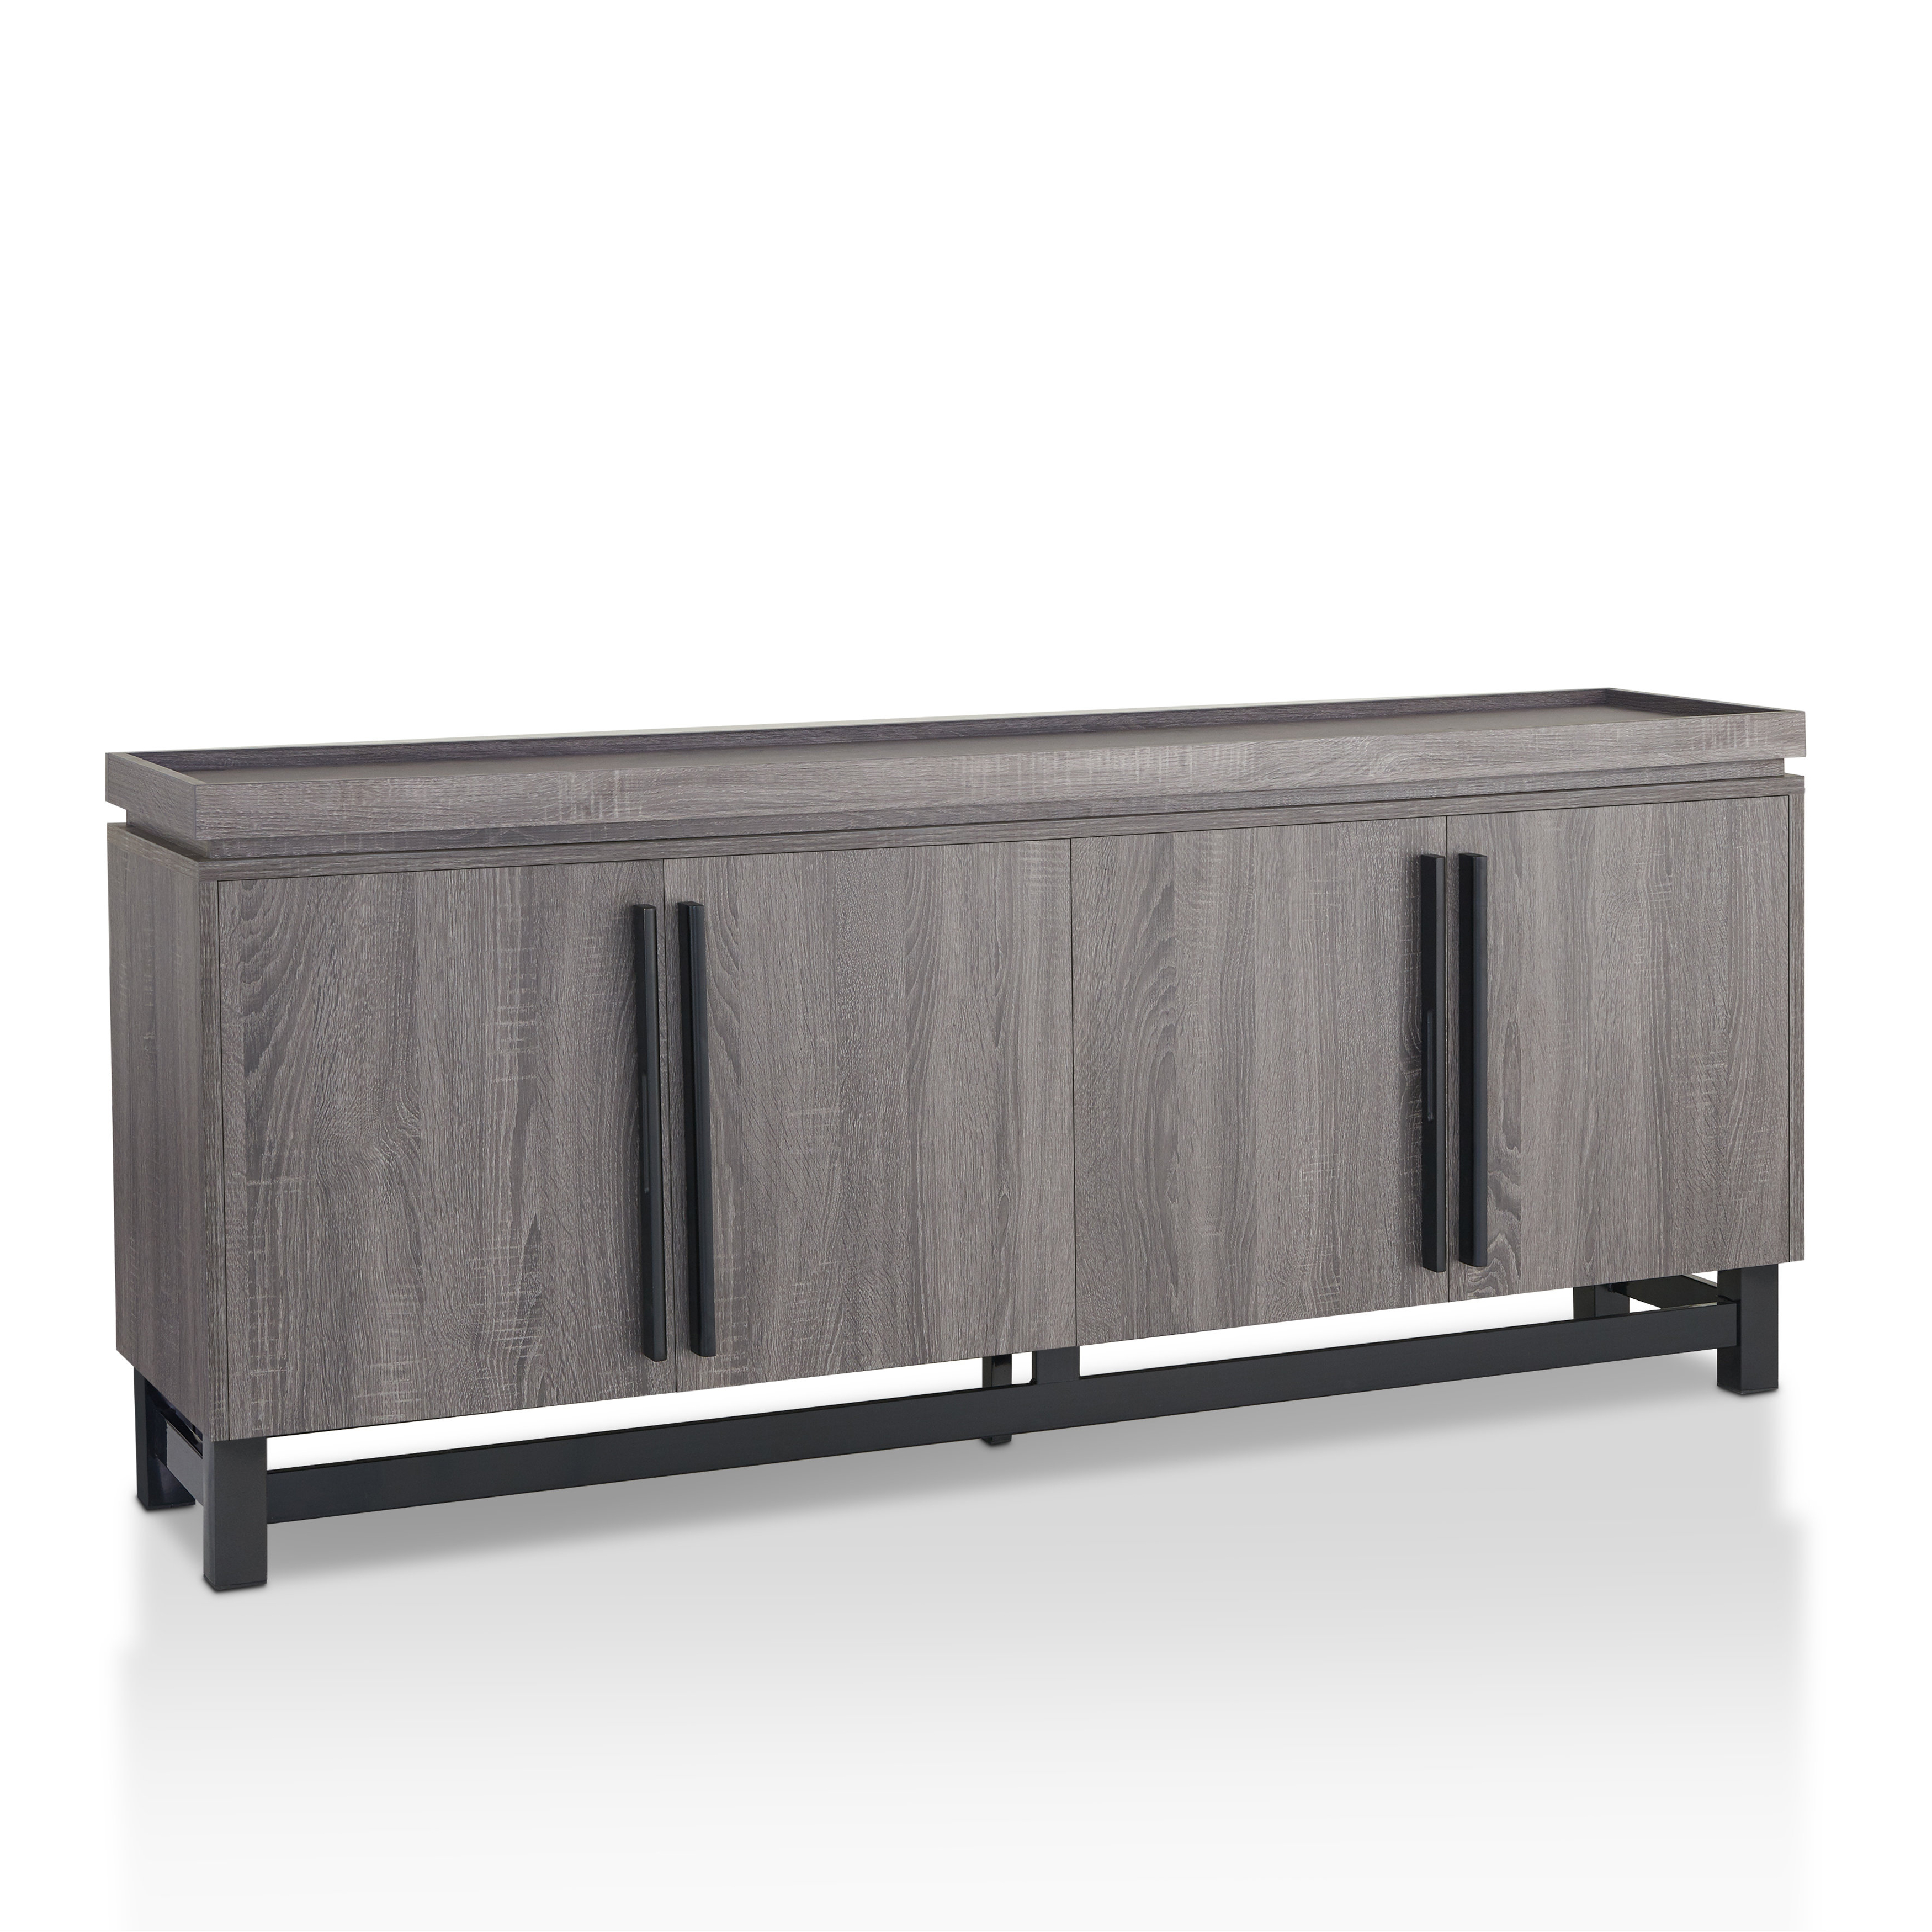 Most Recent Lainey Credenzas In Modern & Contemporary Credenza Modern (View 9 of 20)